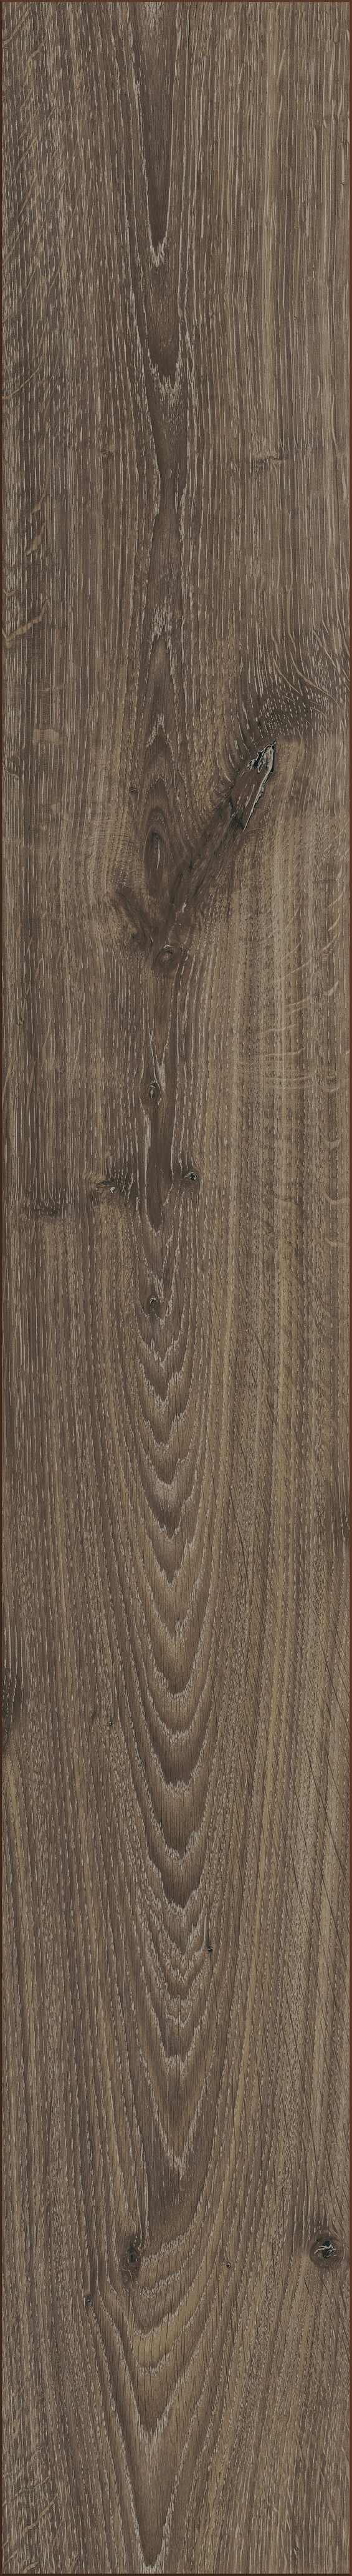 Kronotex robusto timeless oak d 3590 from kronotex for Robusto laminate flooring